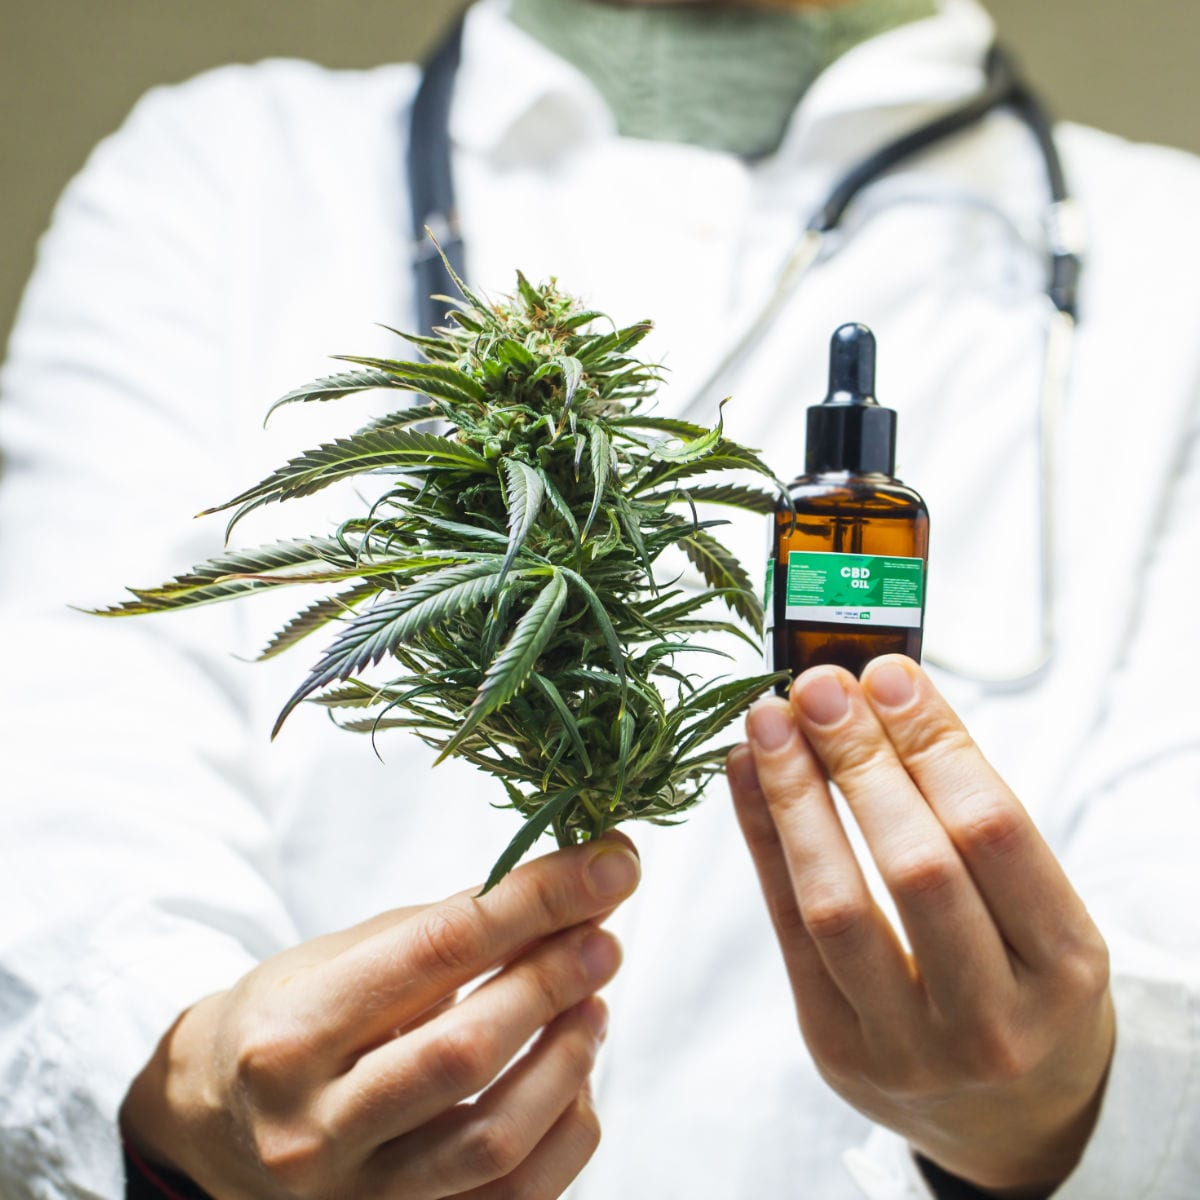 Doctor in a white coat holding cannabis extract for weed storage